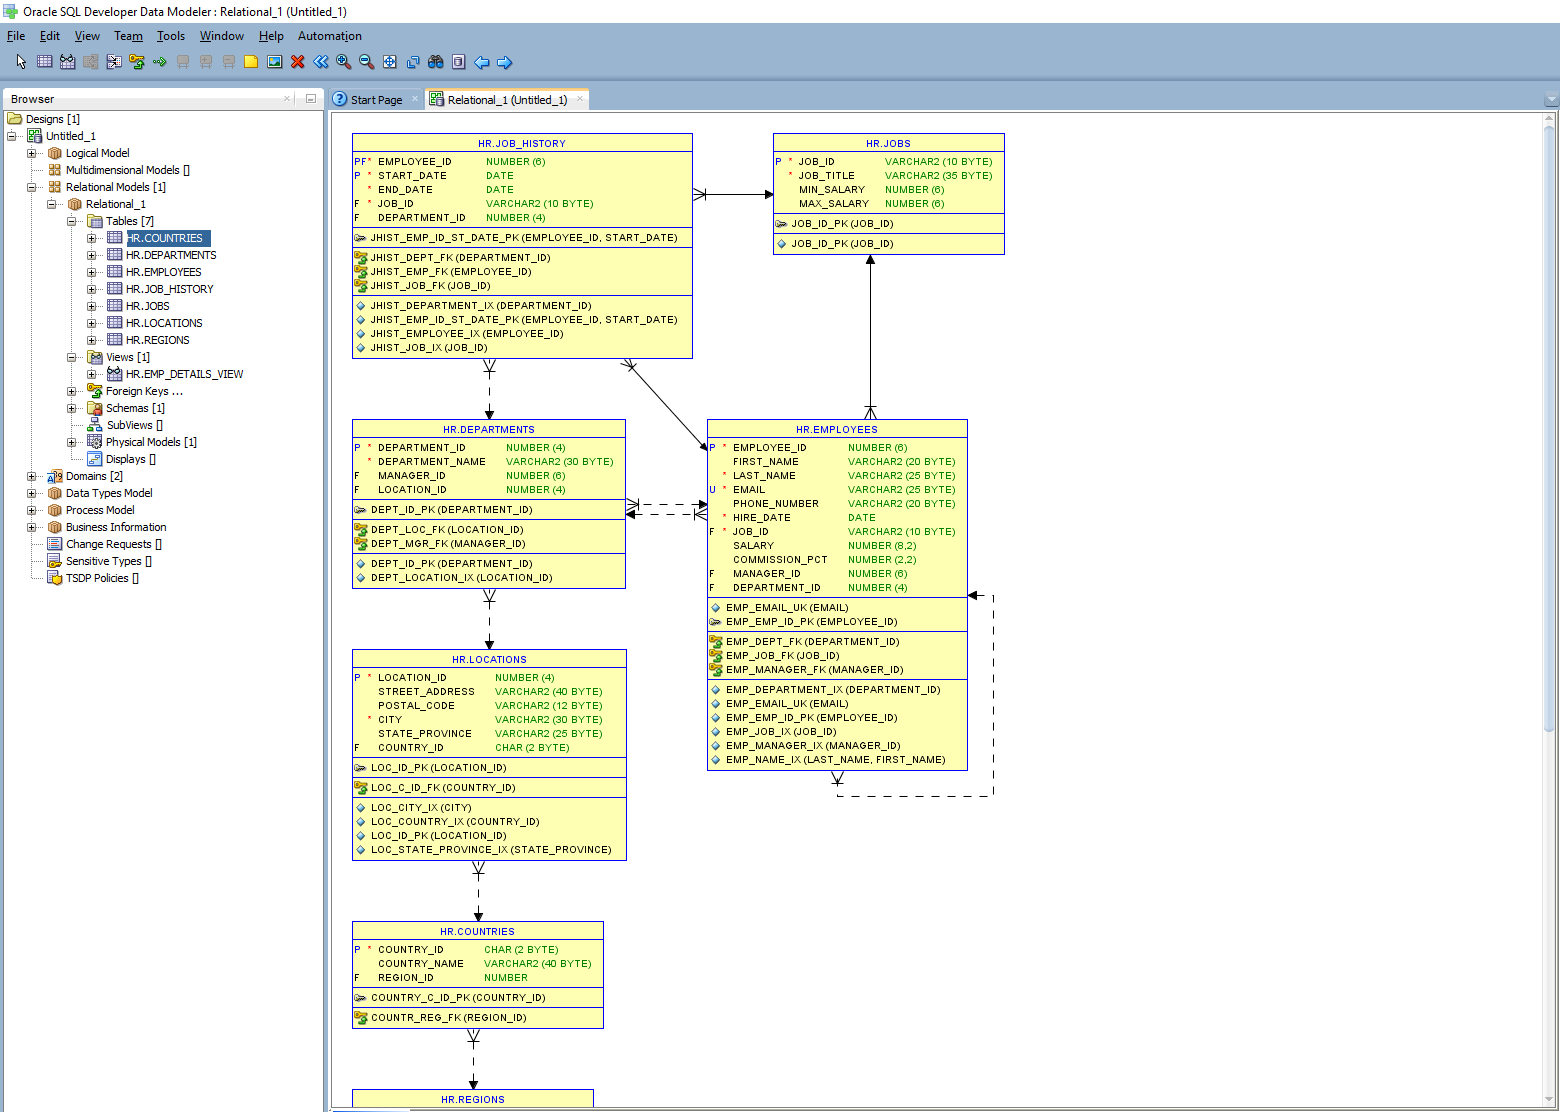 How to create ER diagram for existing database with Oracle SQL